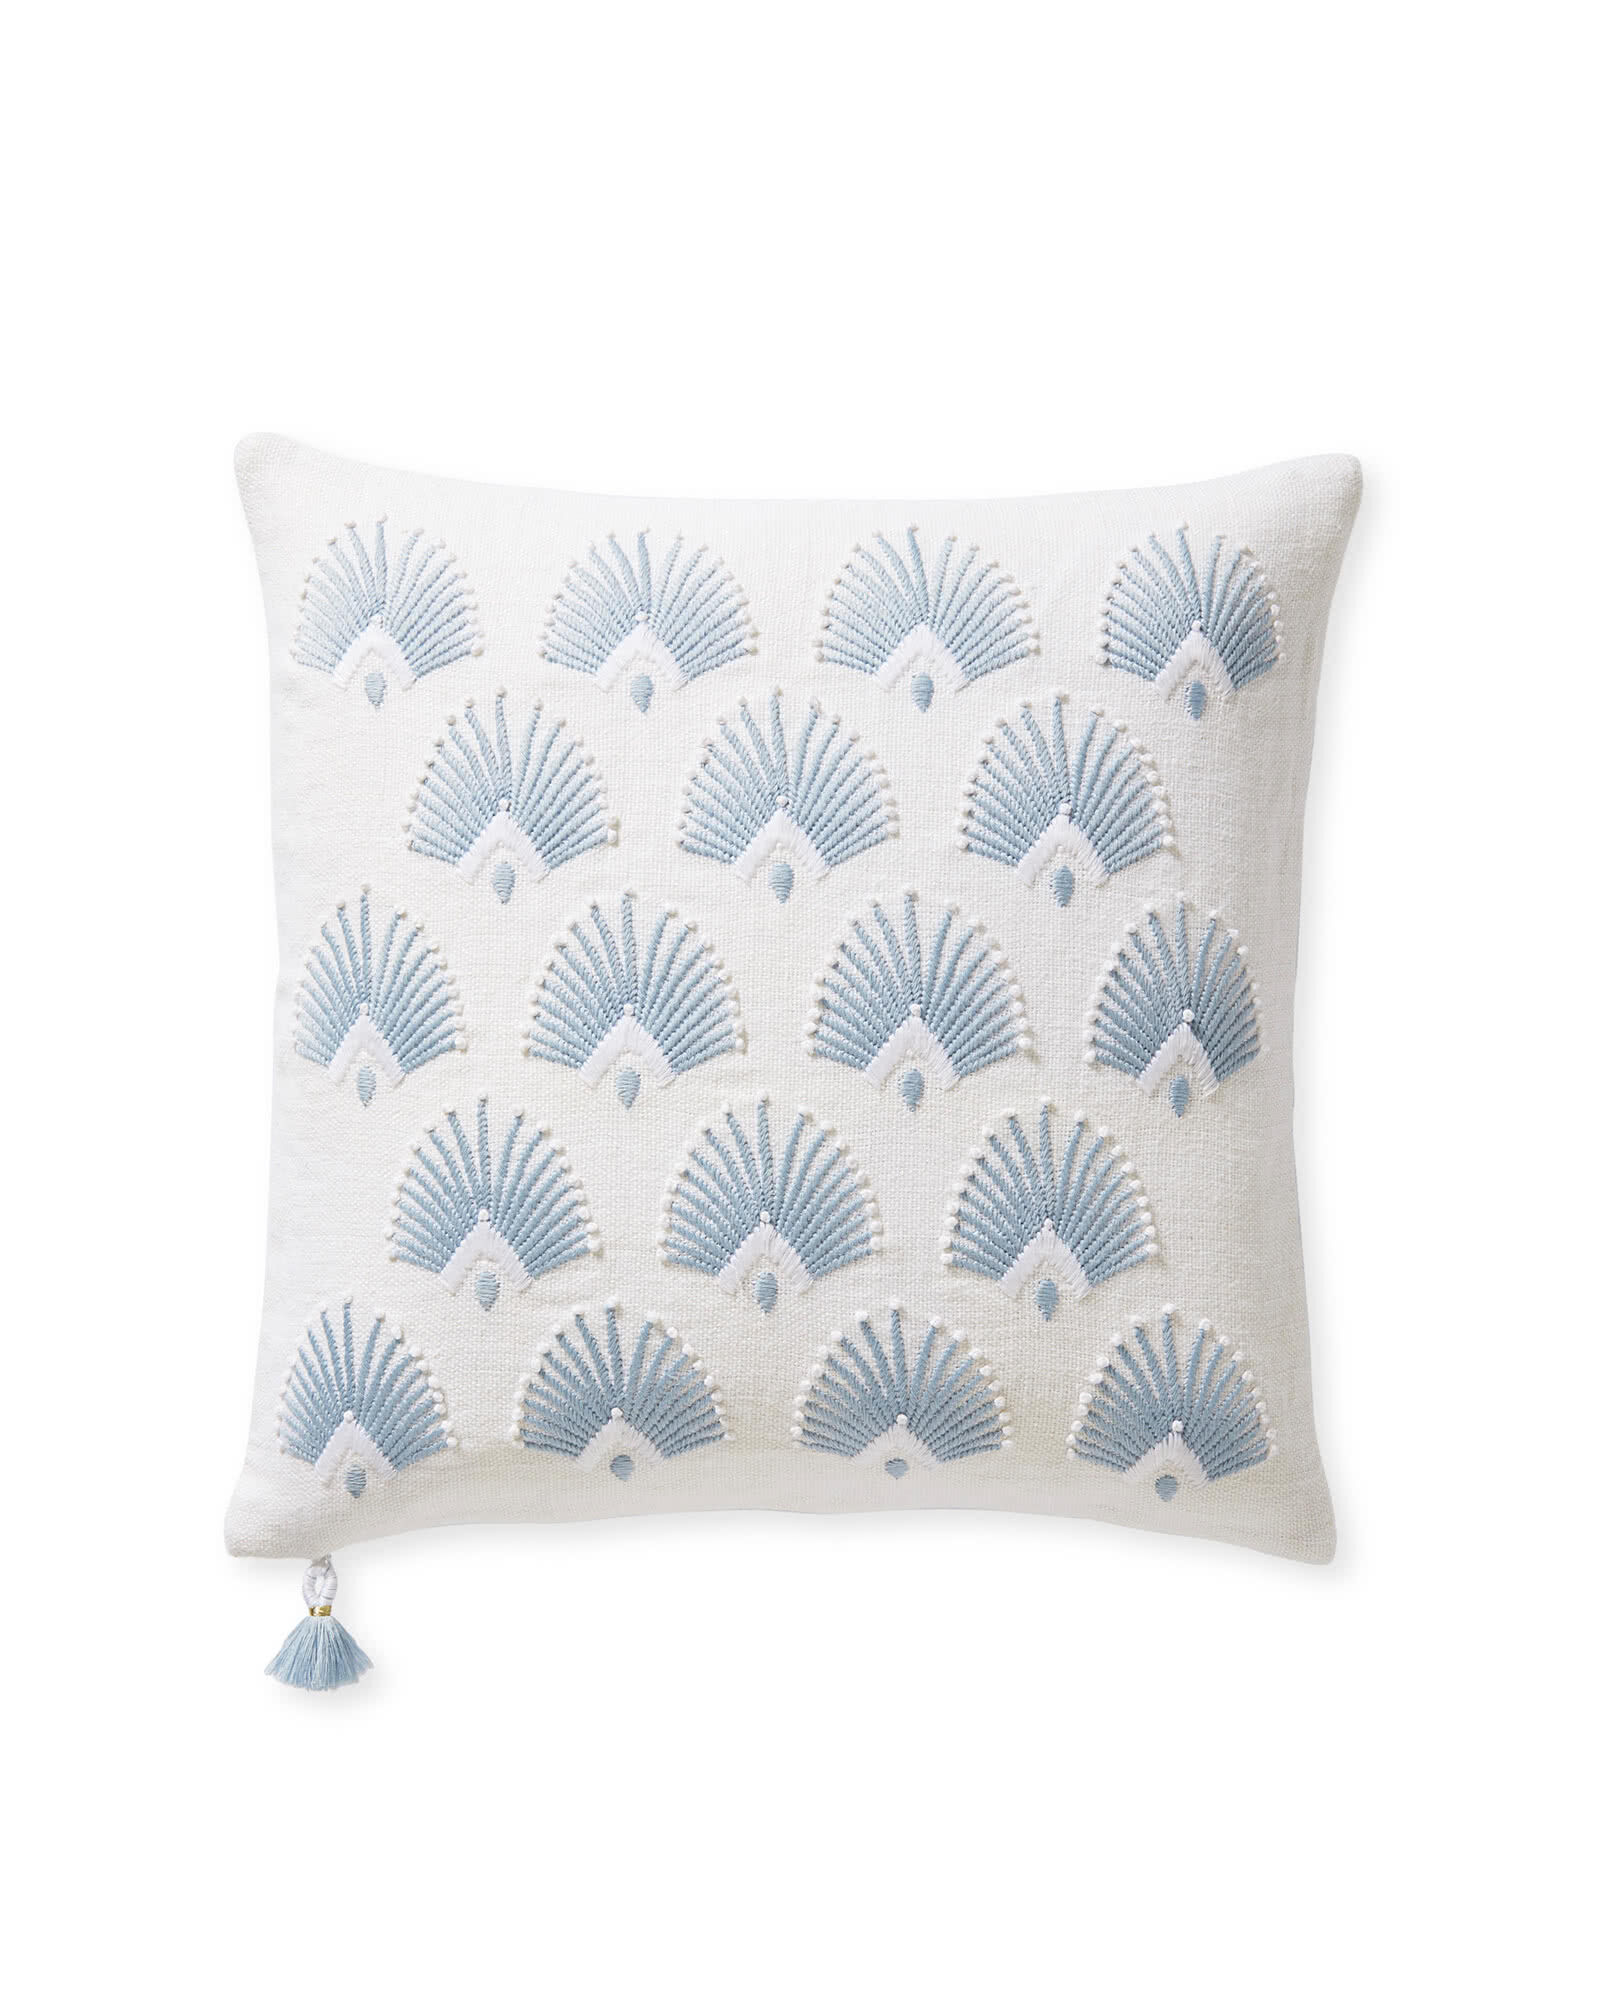 Monarch Pillow Cover